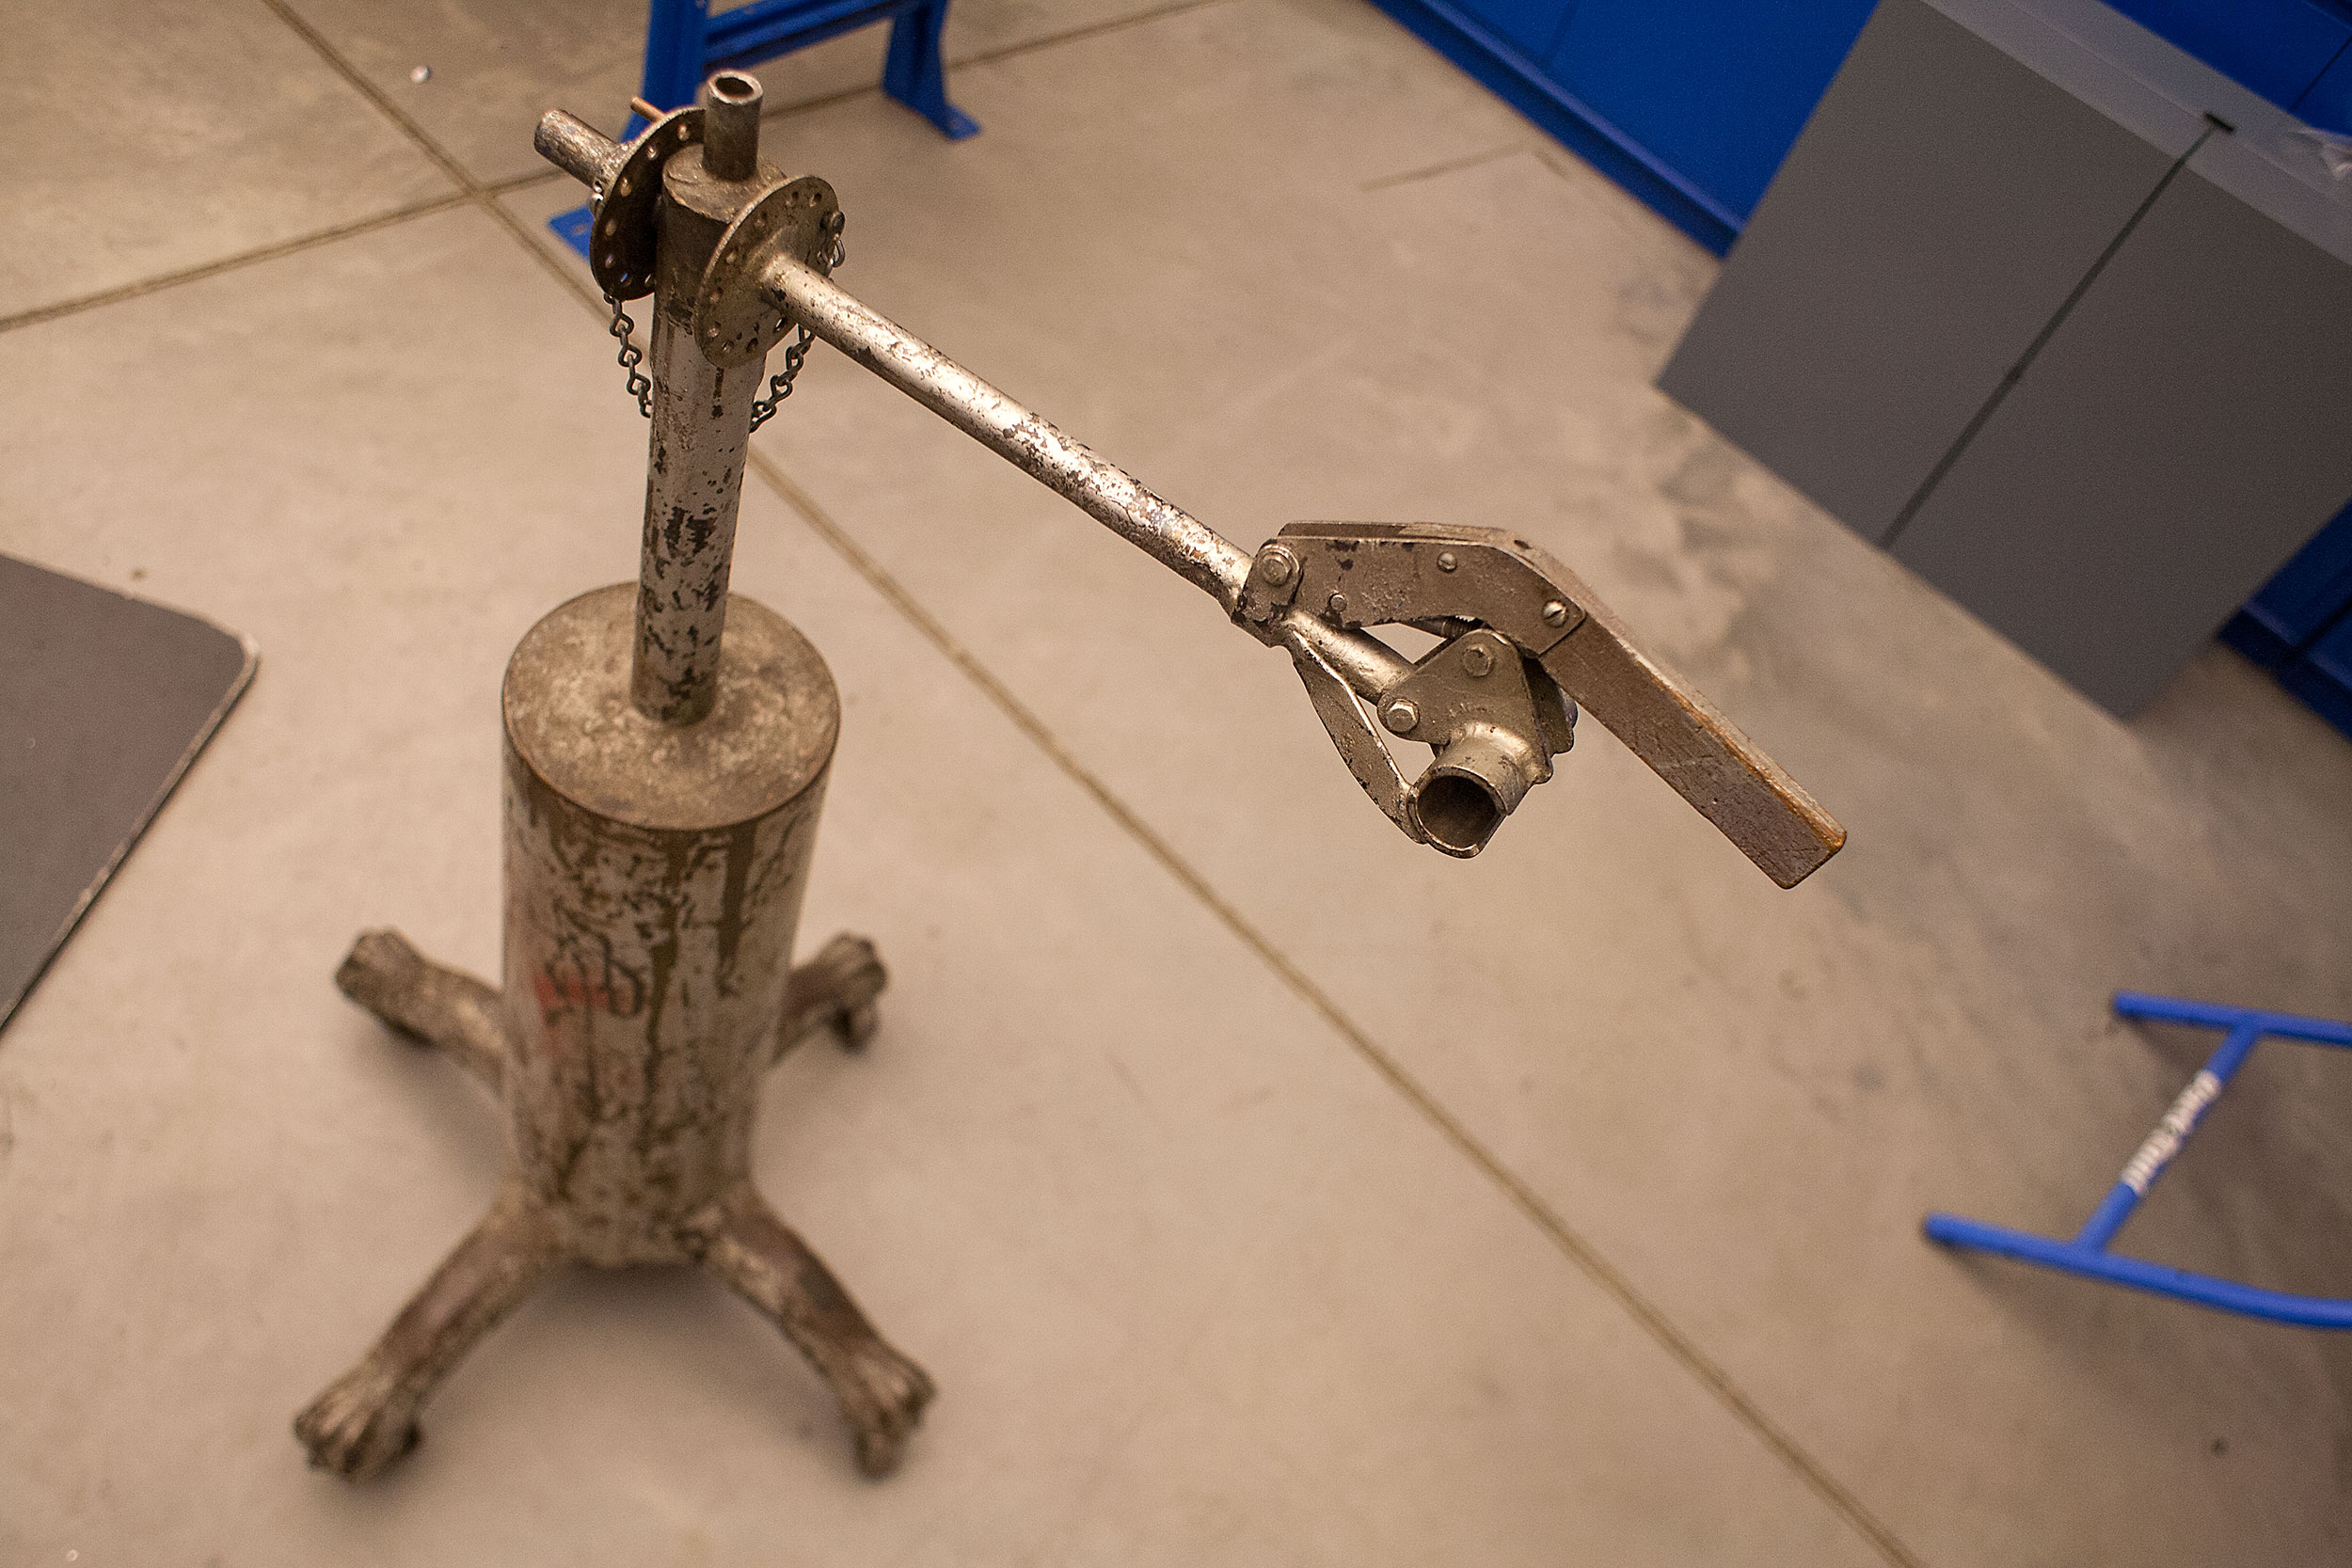 The first repair stand made by Park Tool founders Howard Hawkins and Art Engstrom. It consisted of a dining room table base on caster wheels, a shell casing filled with cement, a truck axel and a broken hockey stick. Photo: David Pierini/Element.ly